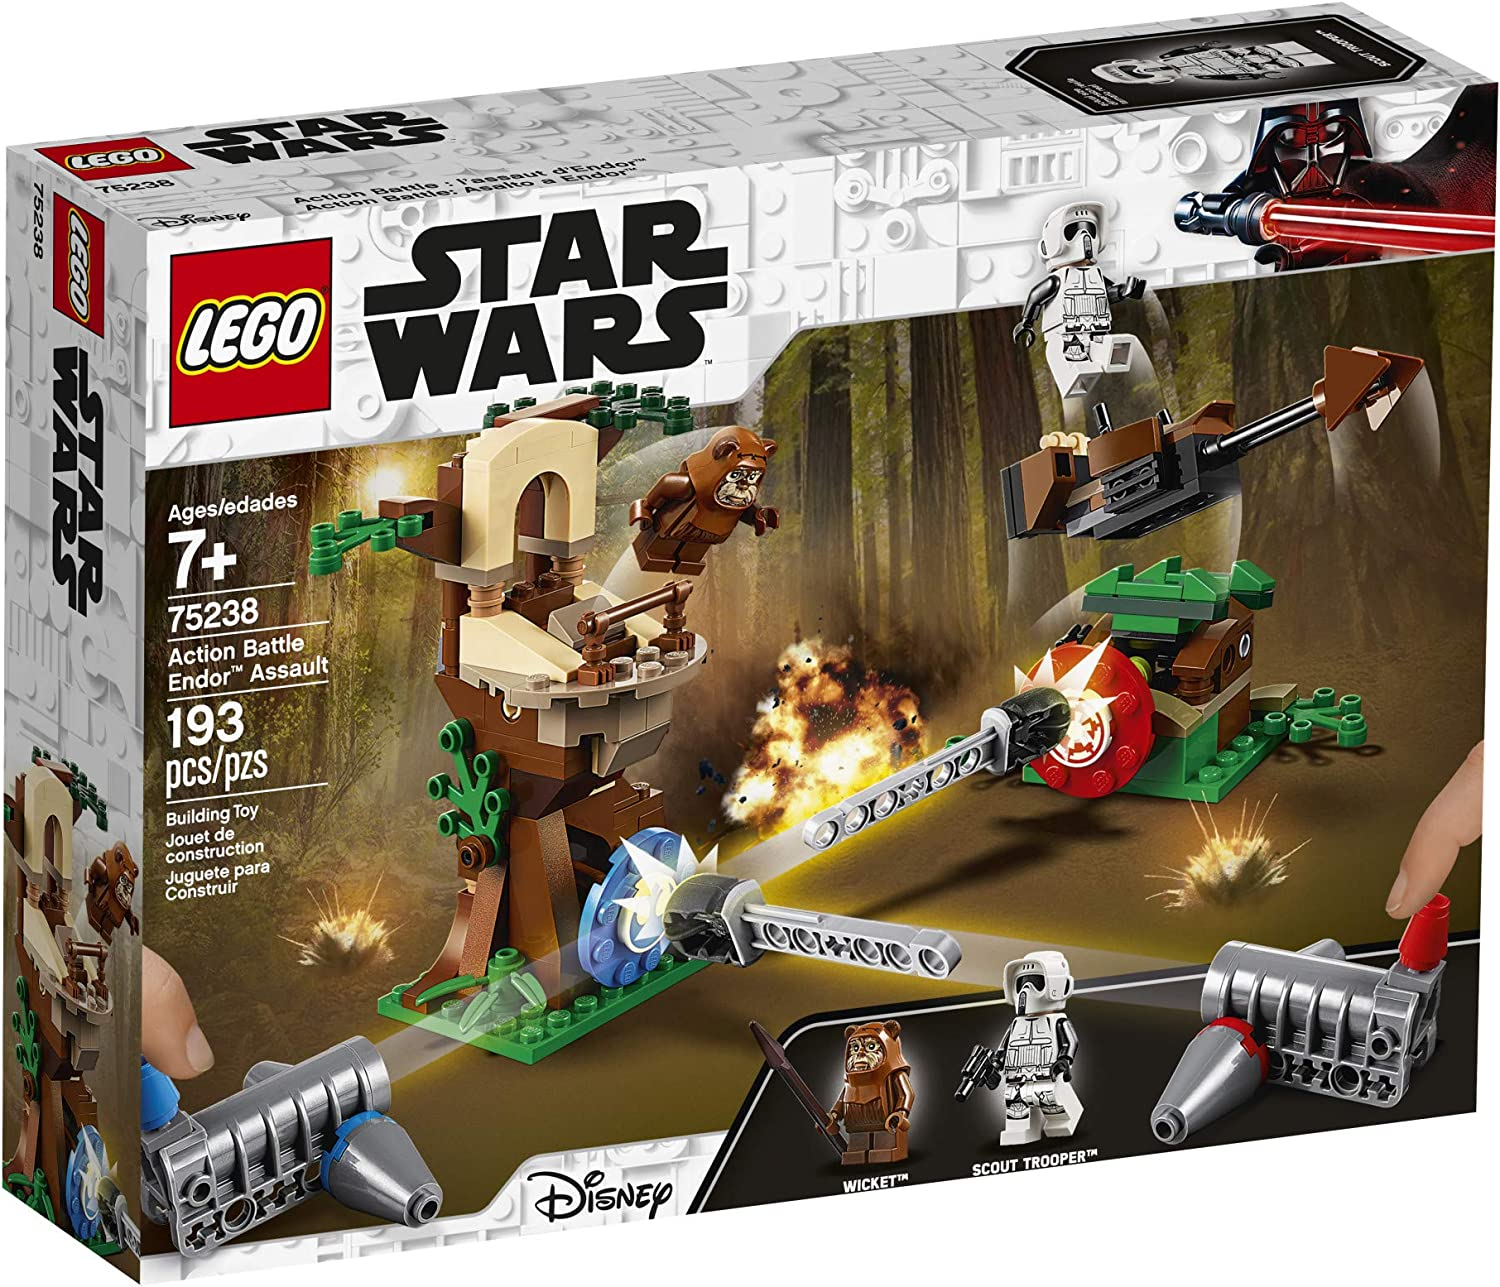 LEGO Star Wars Action Battle Endor Assault Set 75238